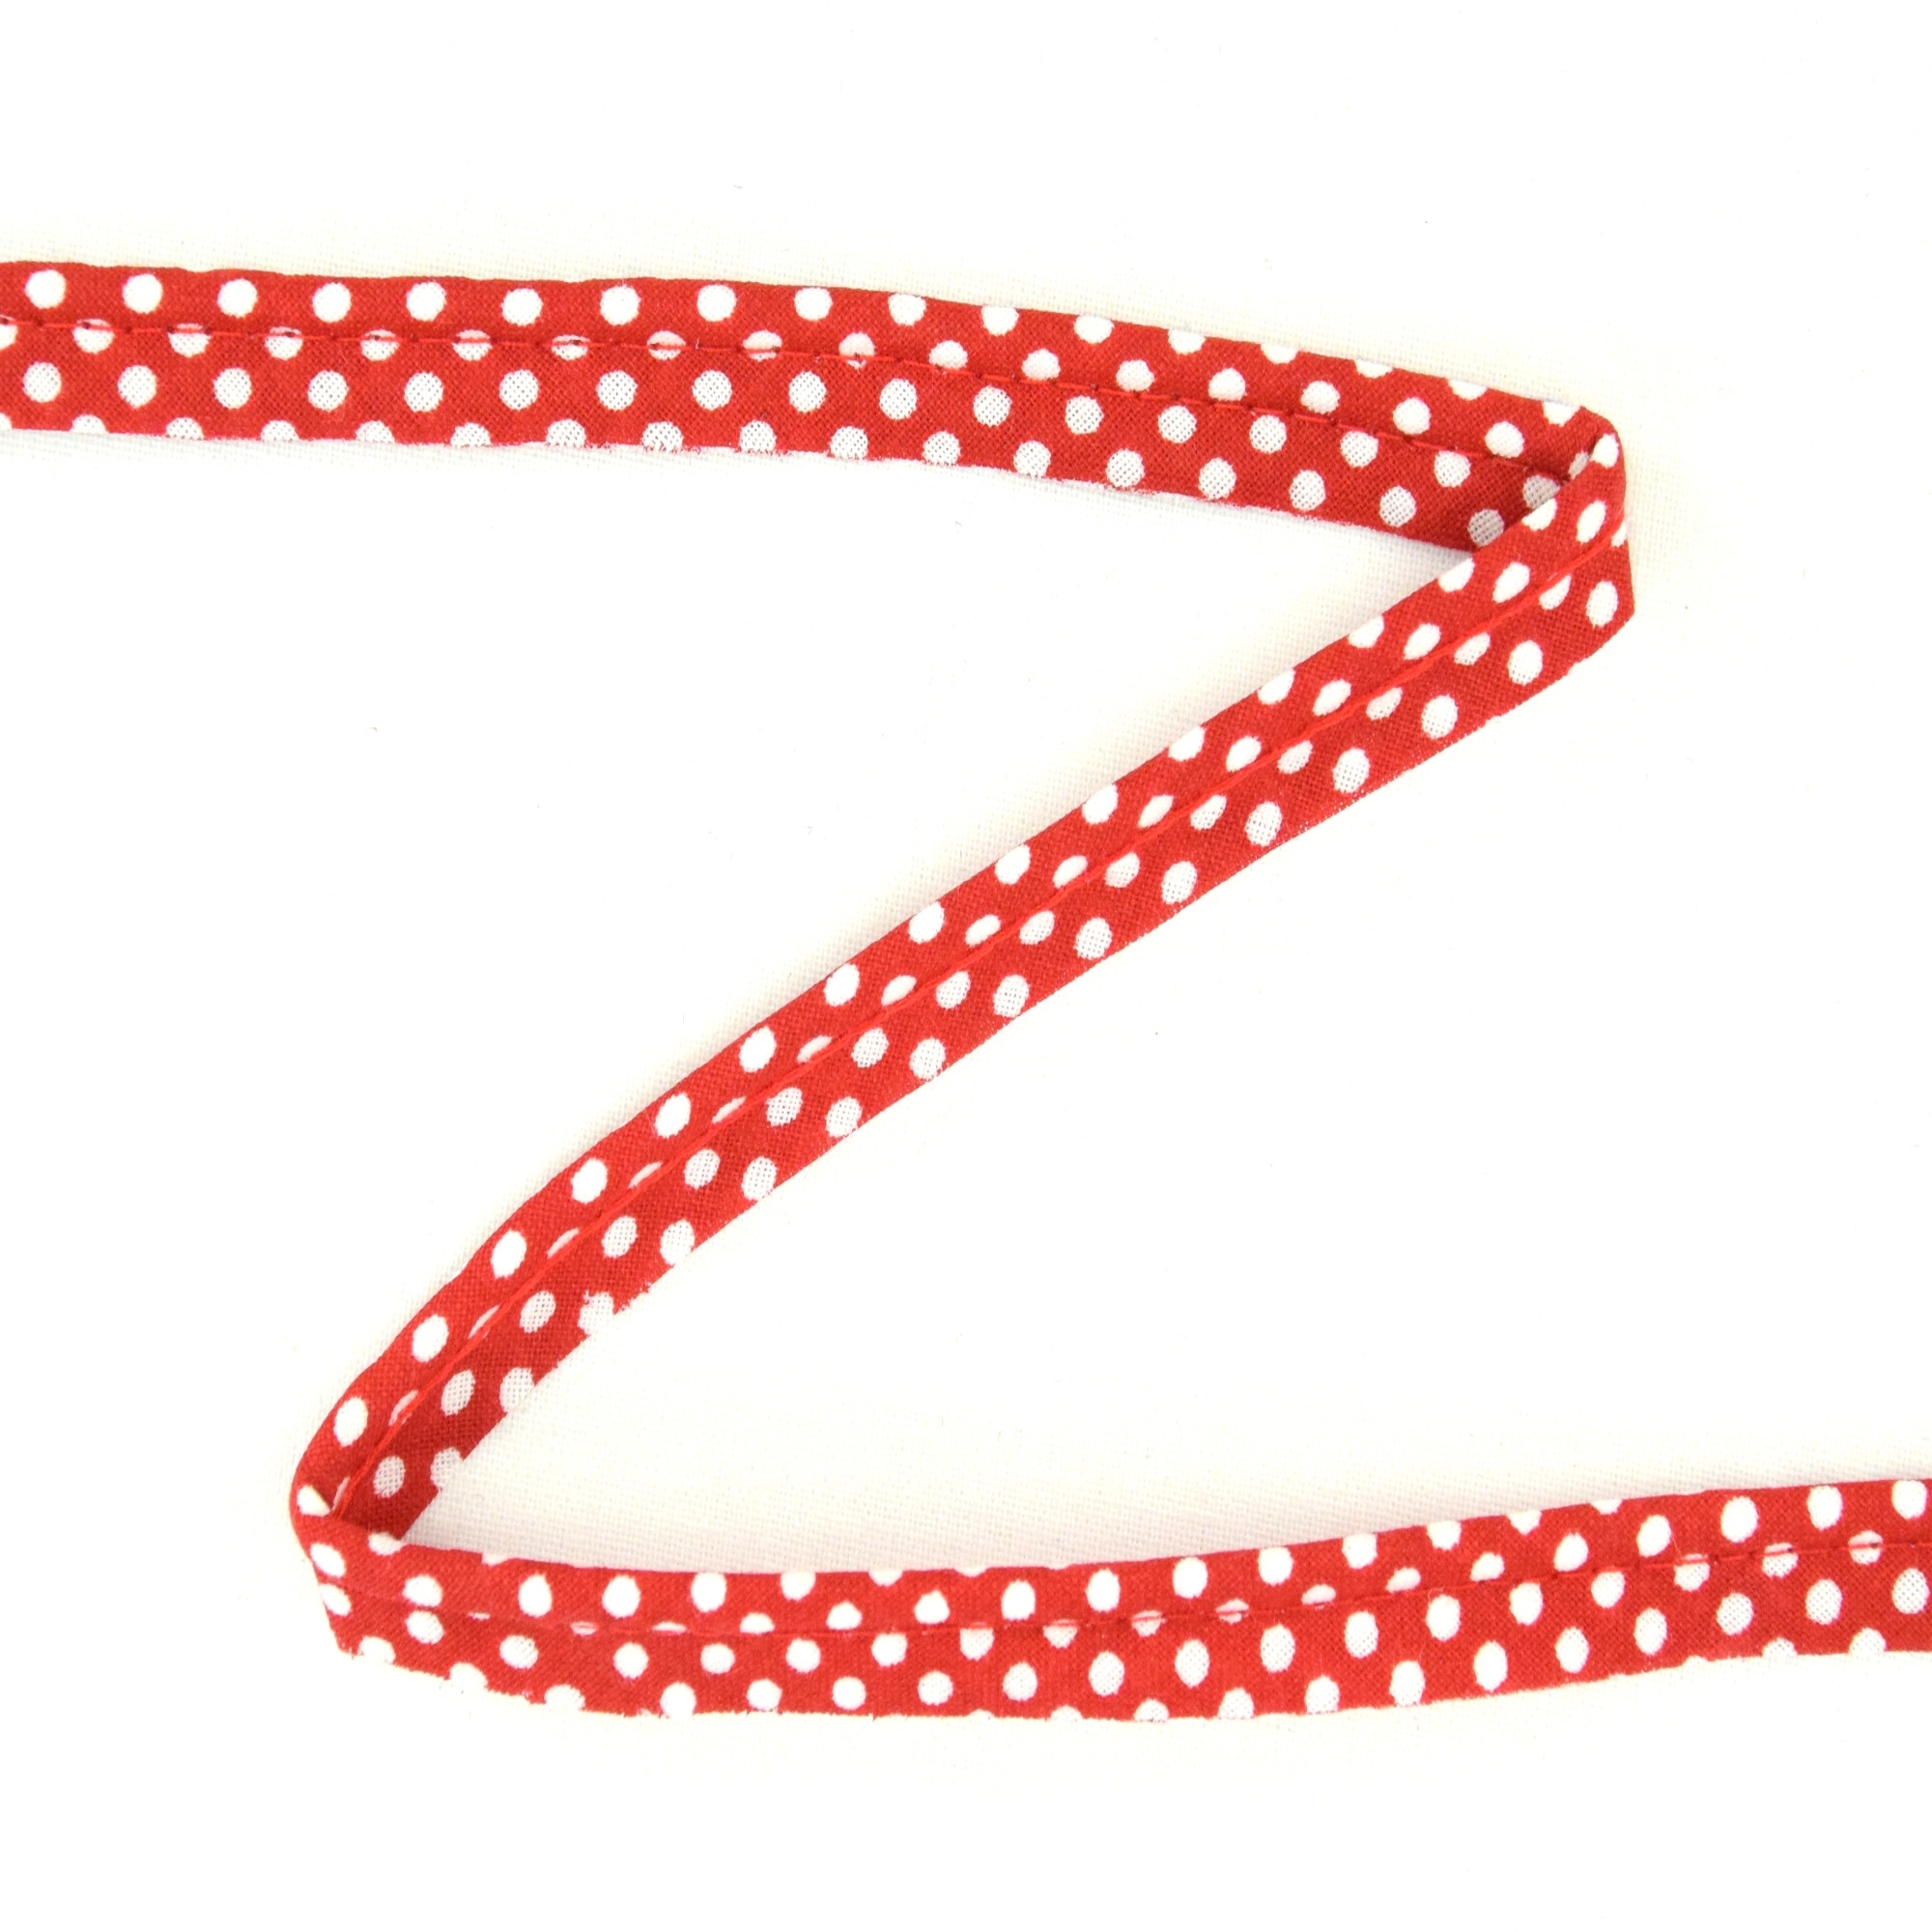 Paspelband Dots, rot-weiss | 1822-8 | rot